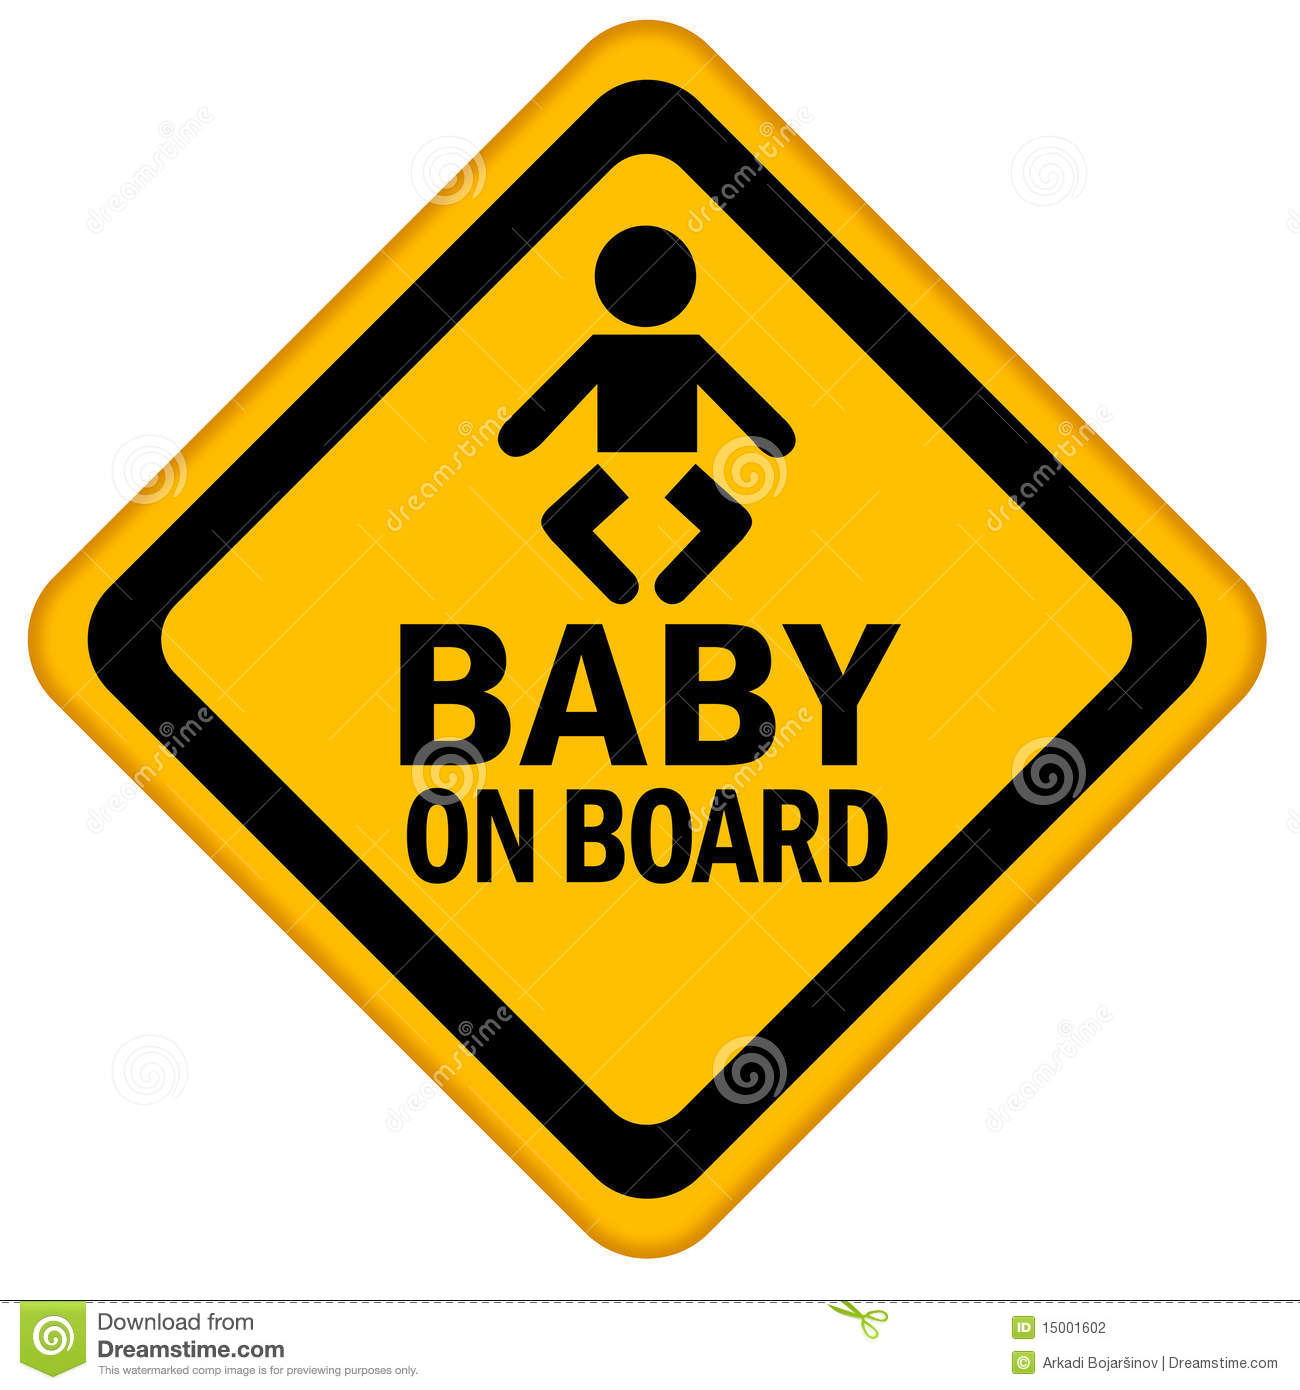 what are the baby on board signs for